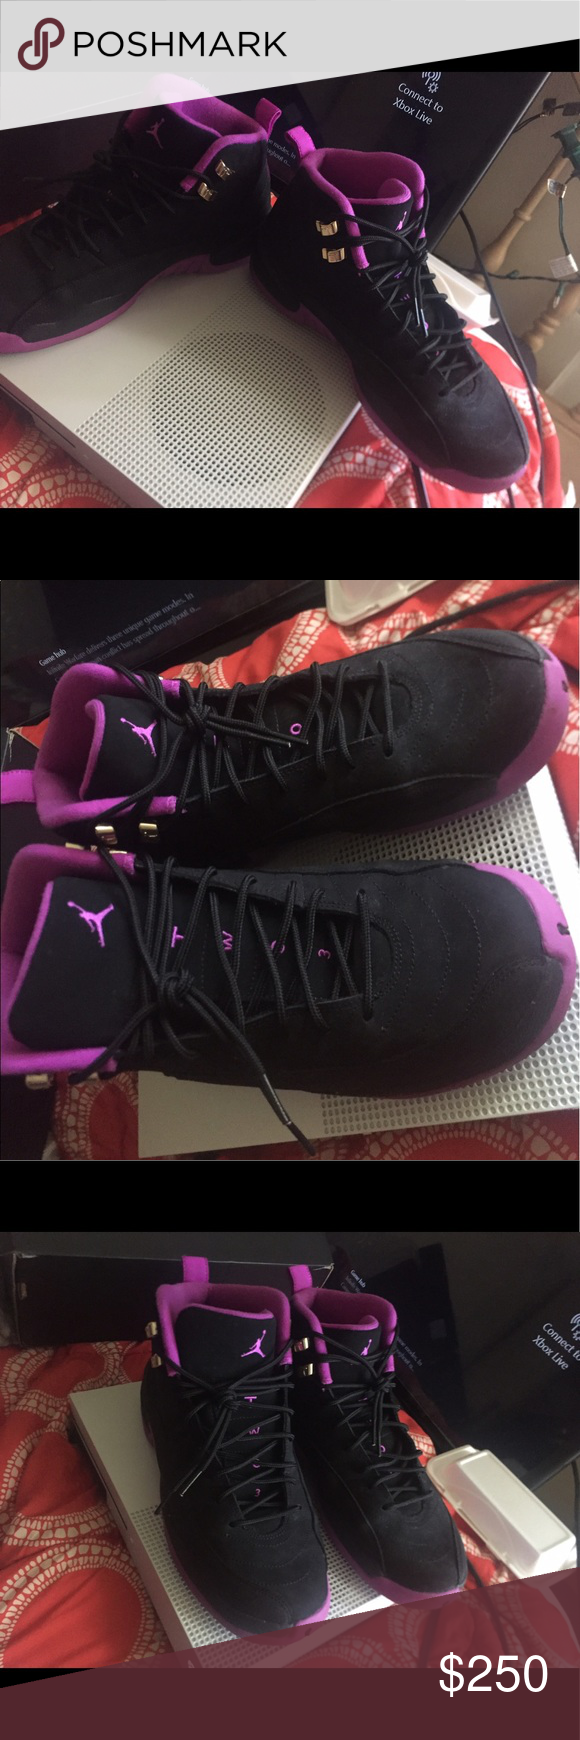 new arrival ce667 3832b Air Jordan's retro hyper violet 12s limited Black suede and ...